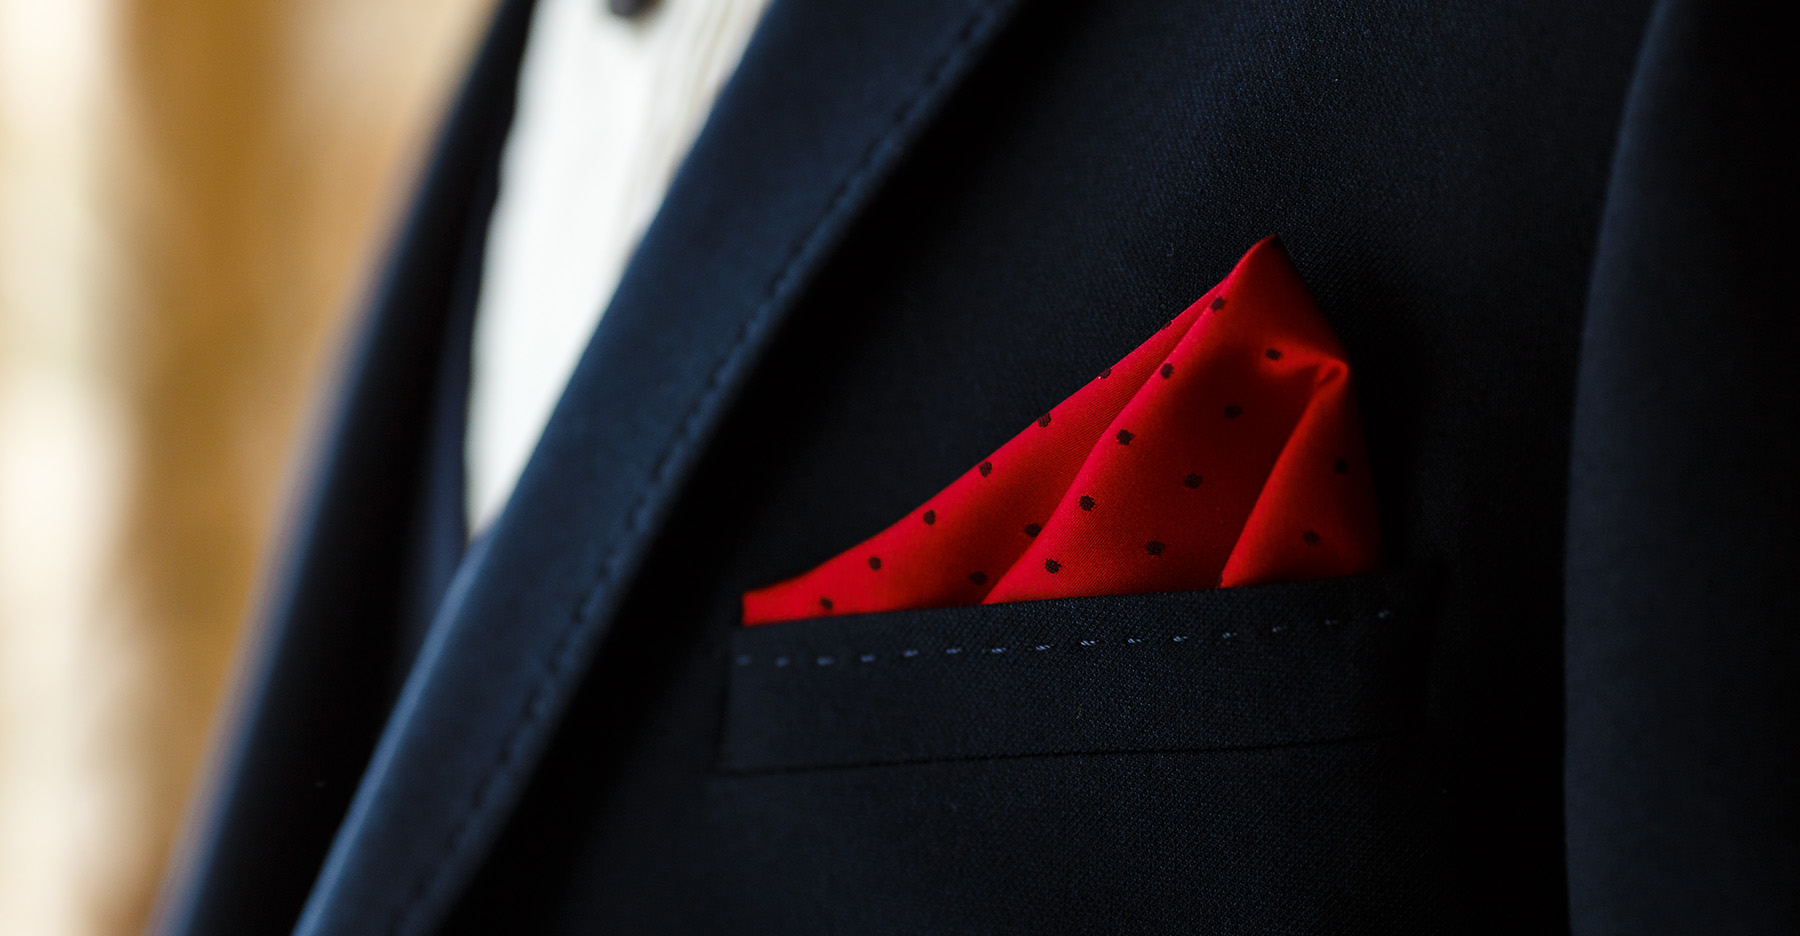 7 Pocket Squares to Match with a Navy Suit